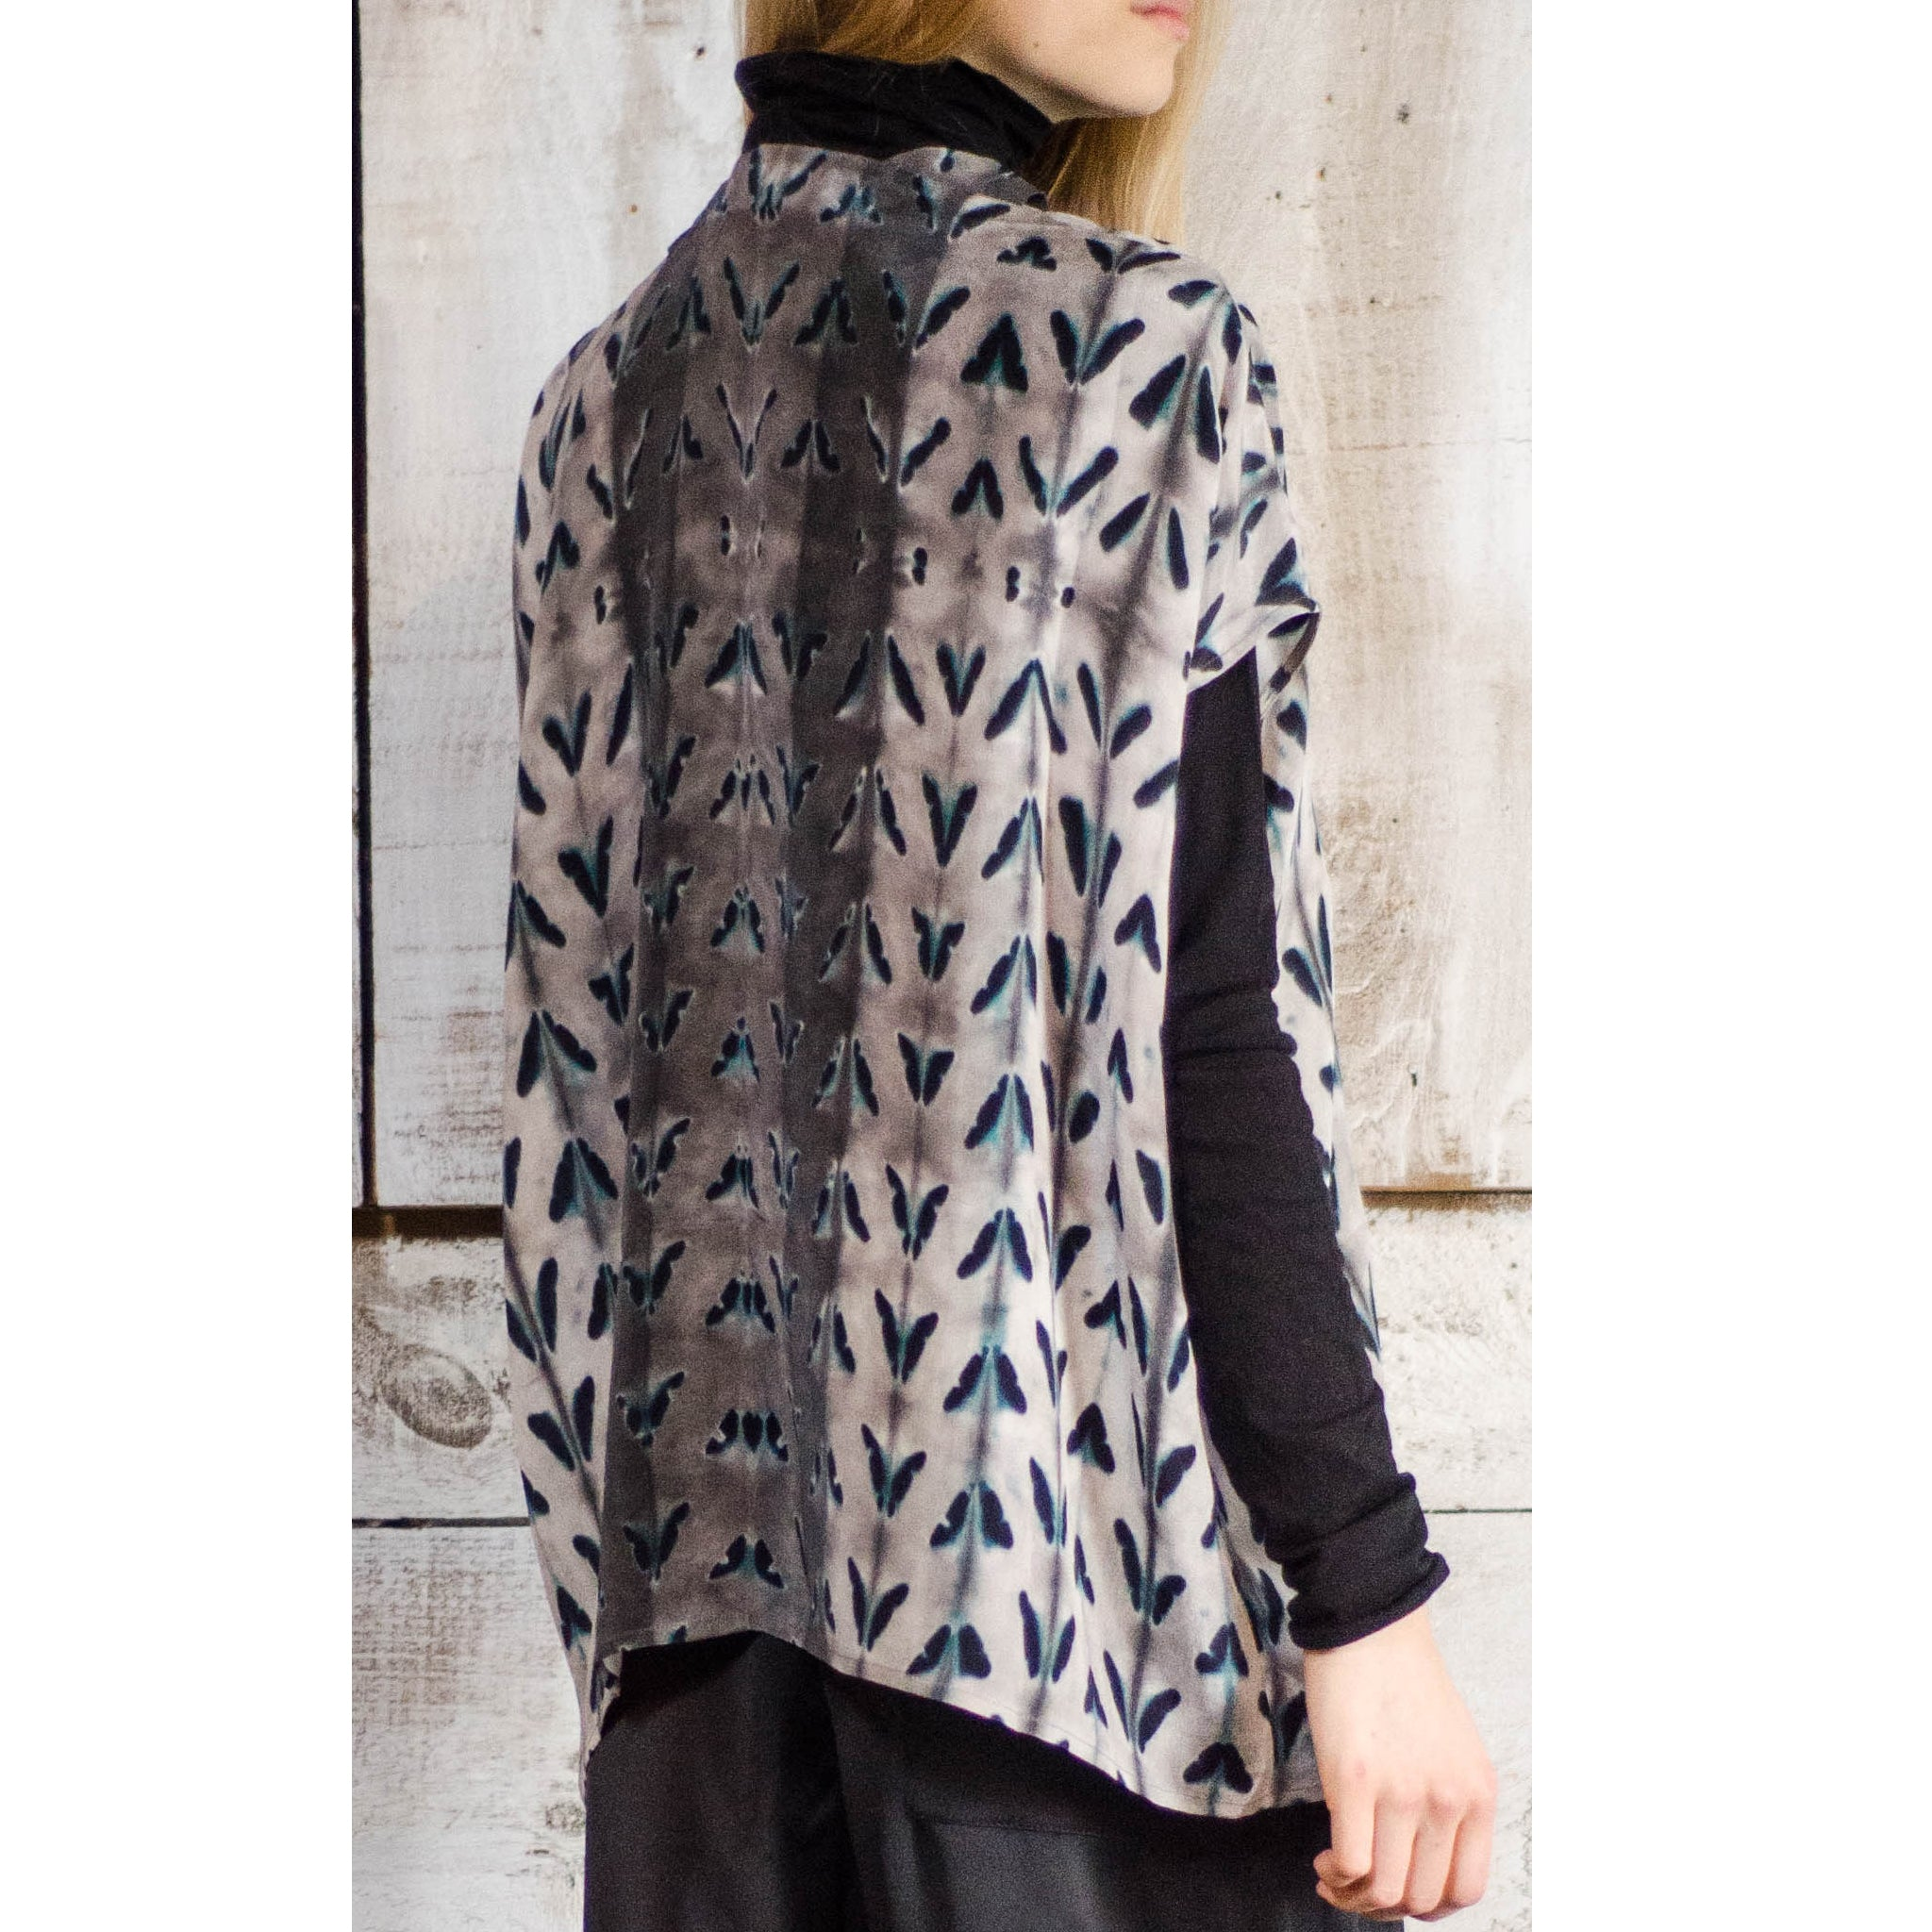 Laura Siegel Collection - Oversize Silk top